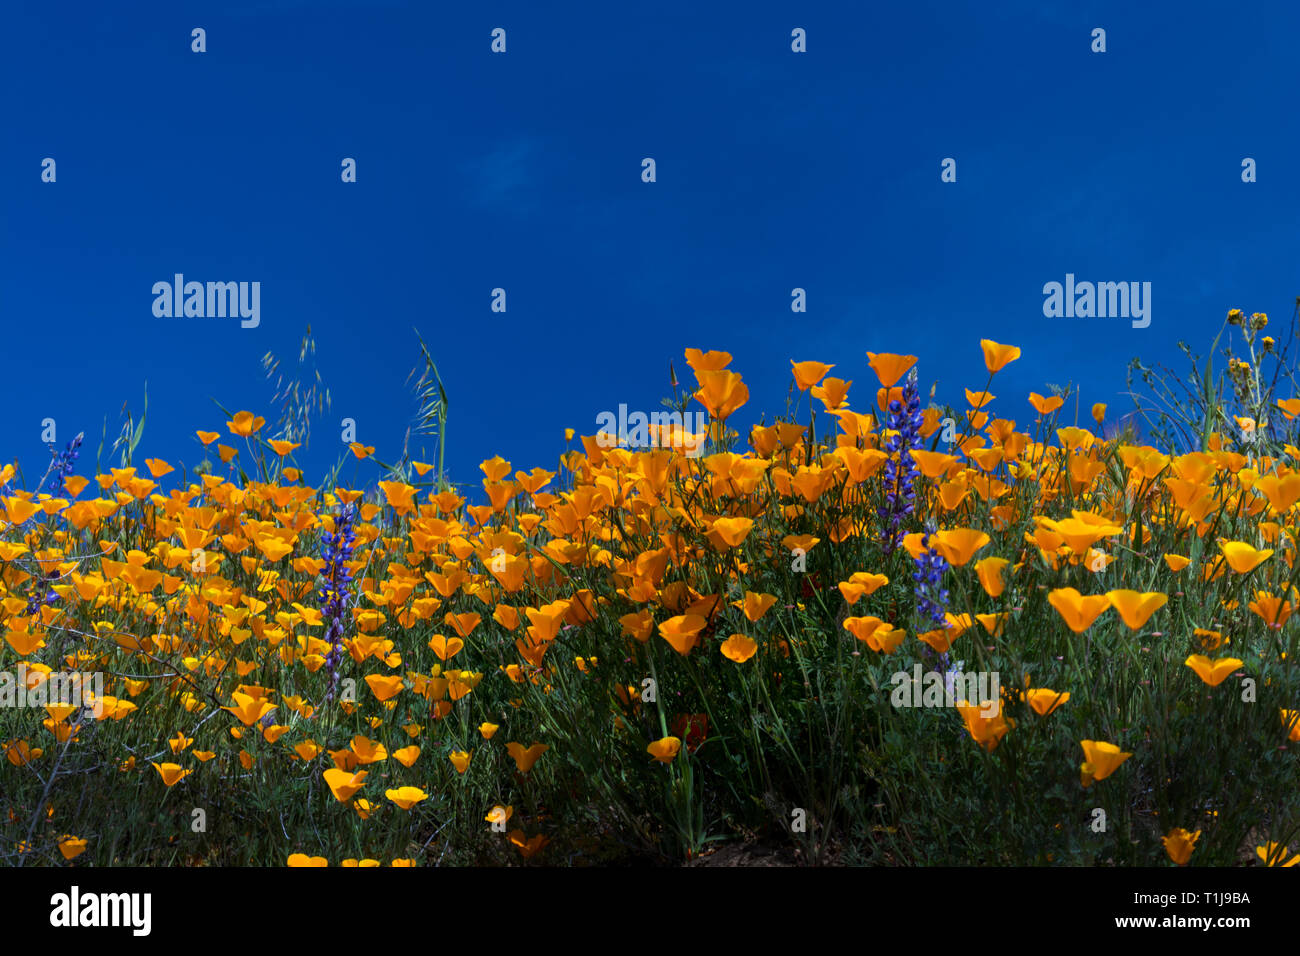 Poppies against a blue sky - Stock Image